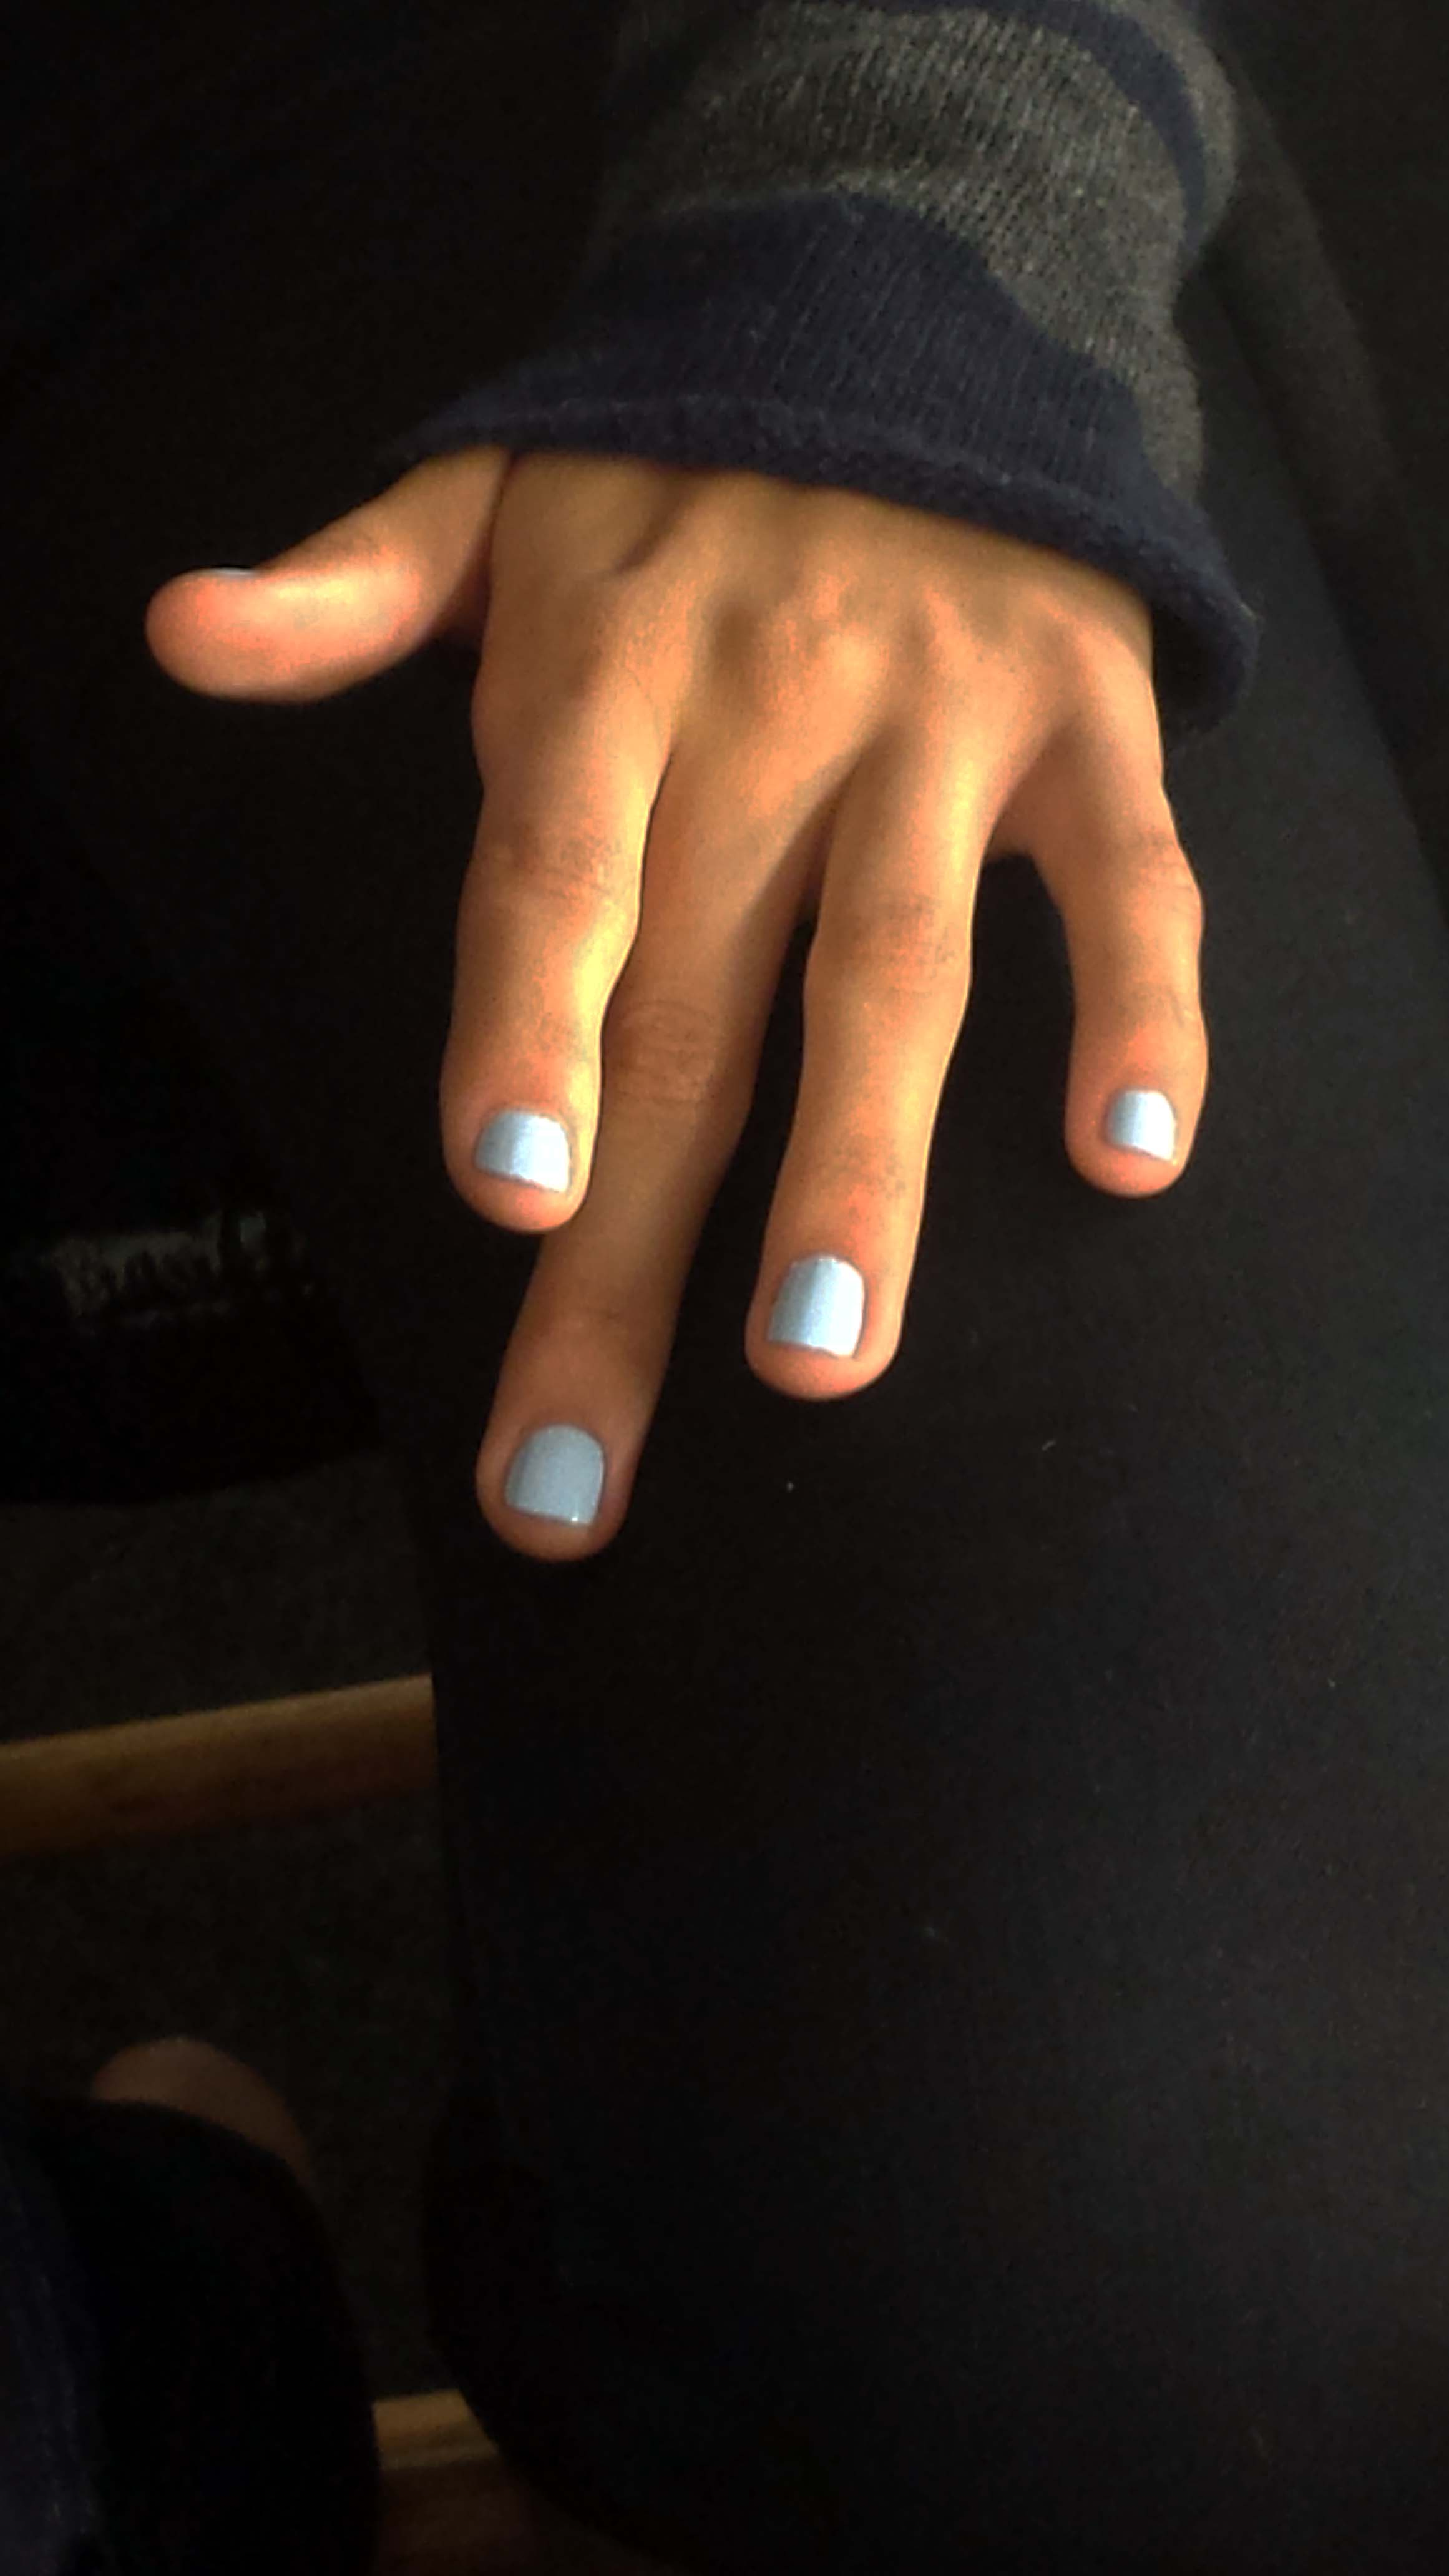 Deborah Lippmann used Blue Orchid and La Vie En Rose to create the nails.